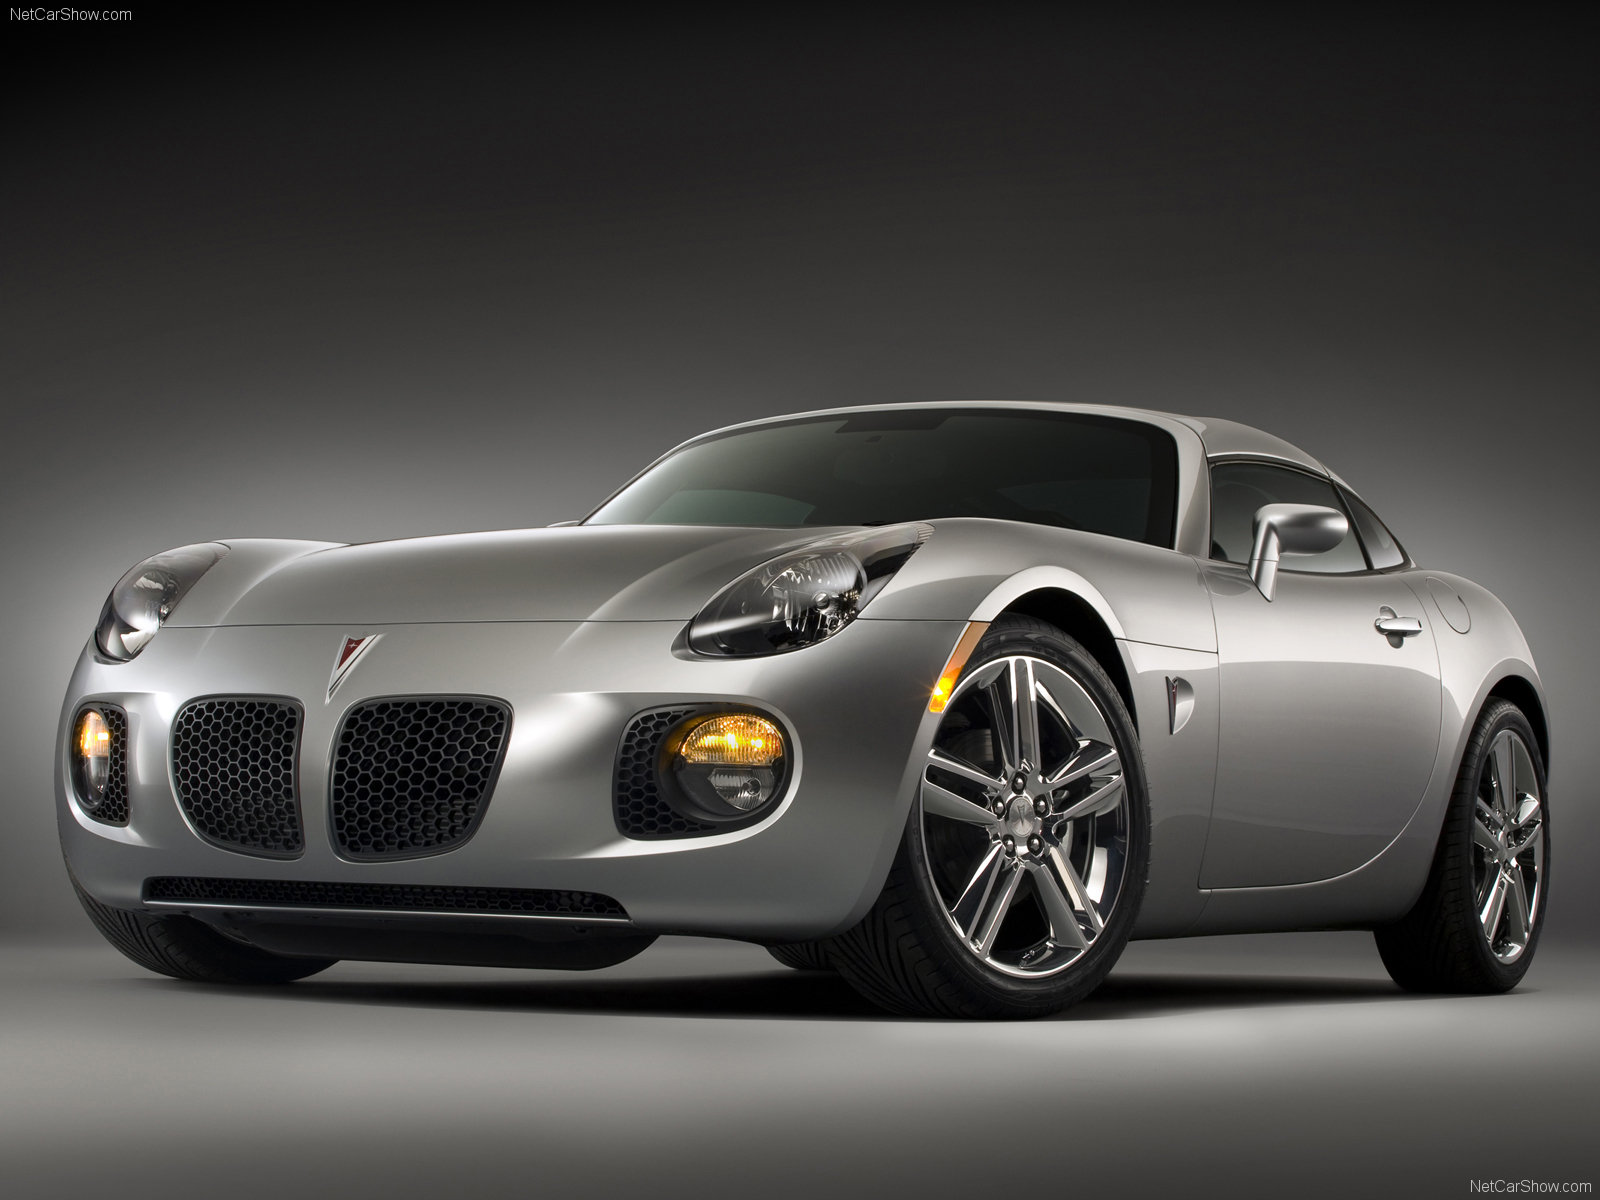 Pontiac Solstice photo 53427